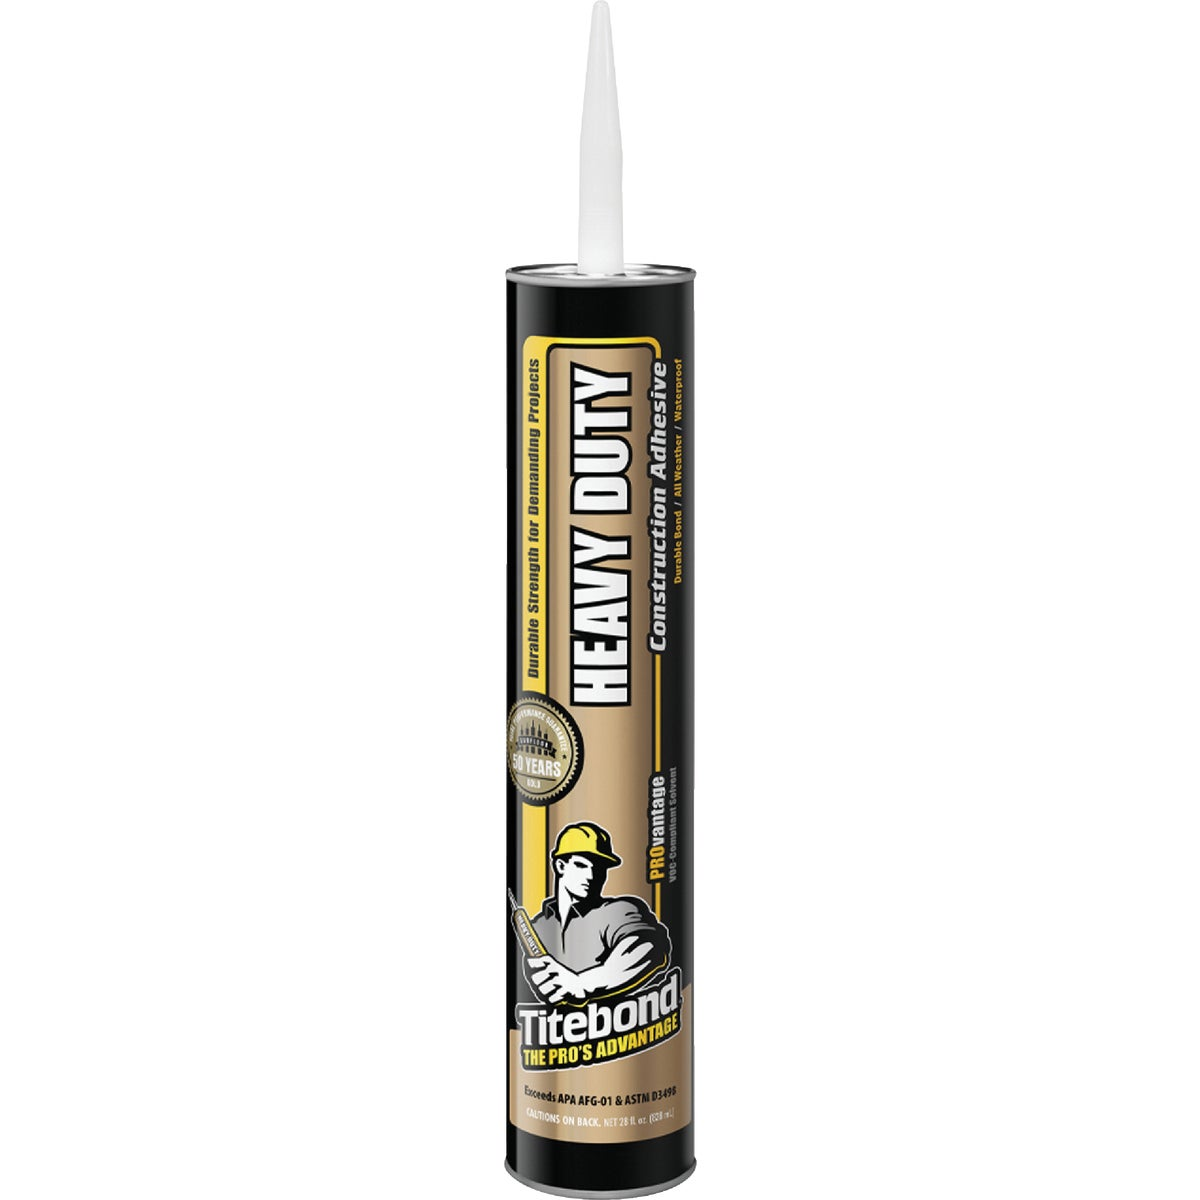 PRO-V HD CONST ADHESIVE - 5252 by Franklin Interl